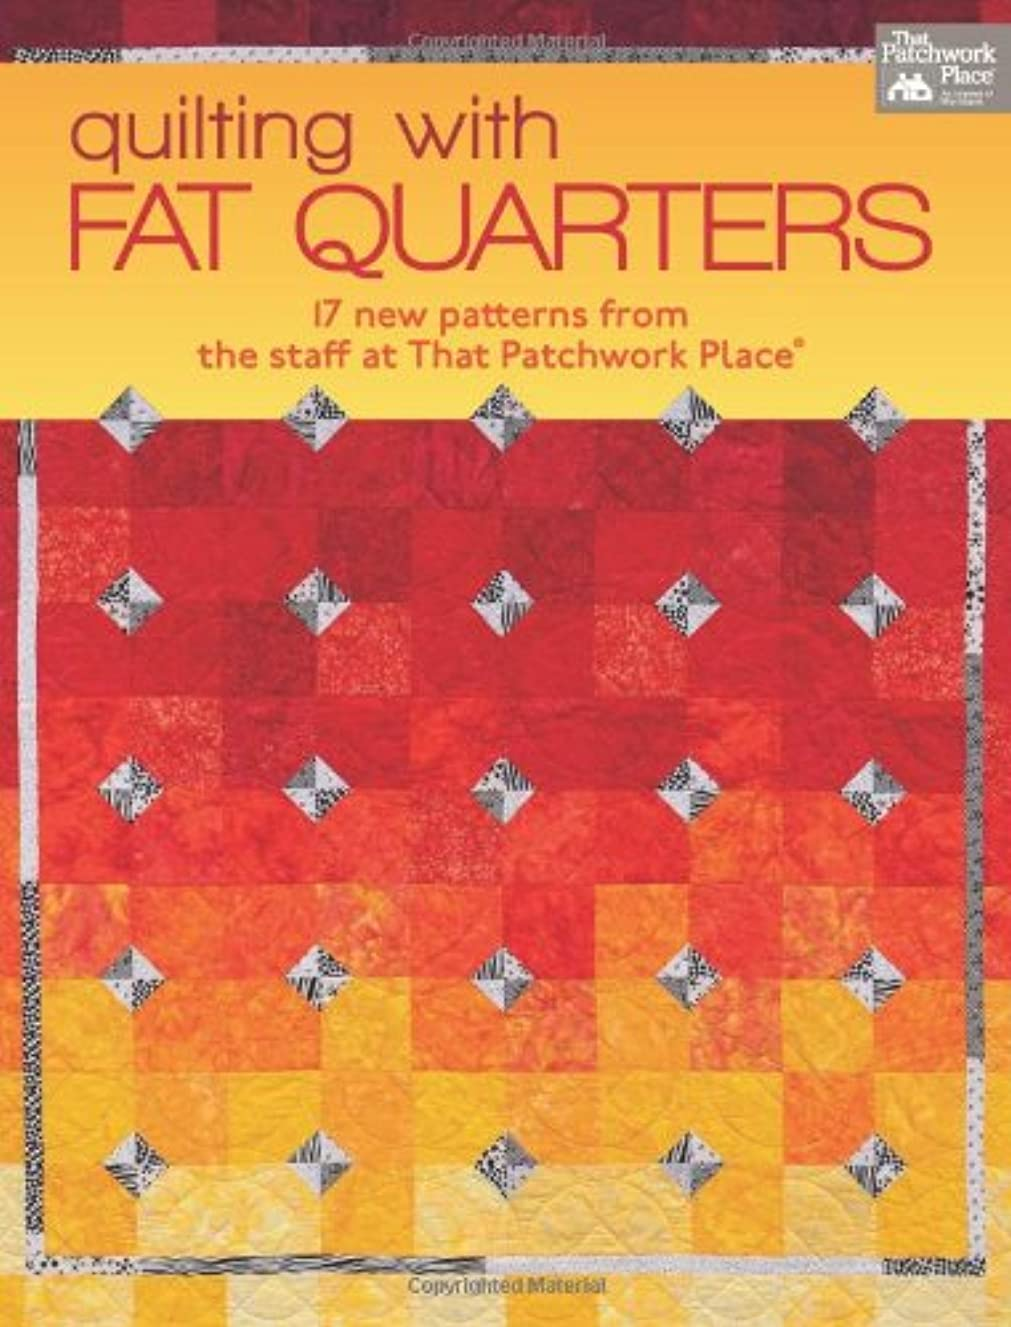 Quilting with Fat Quarters: 17 New Patterns from the Staff at That Patchwork Place?